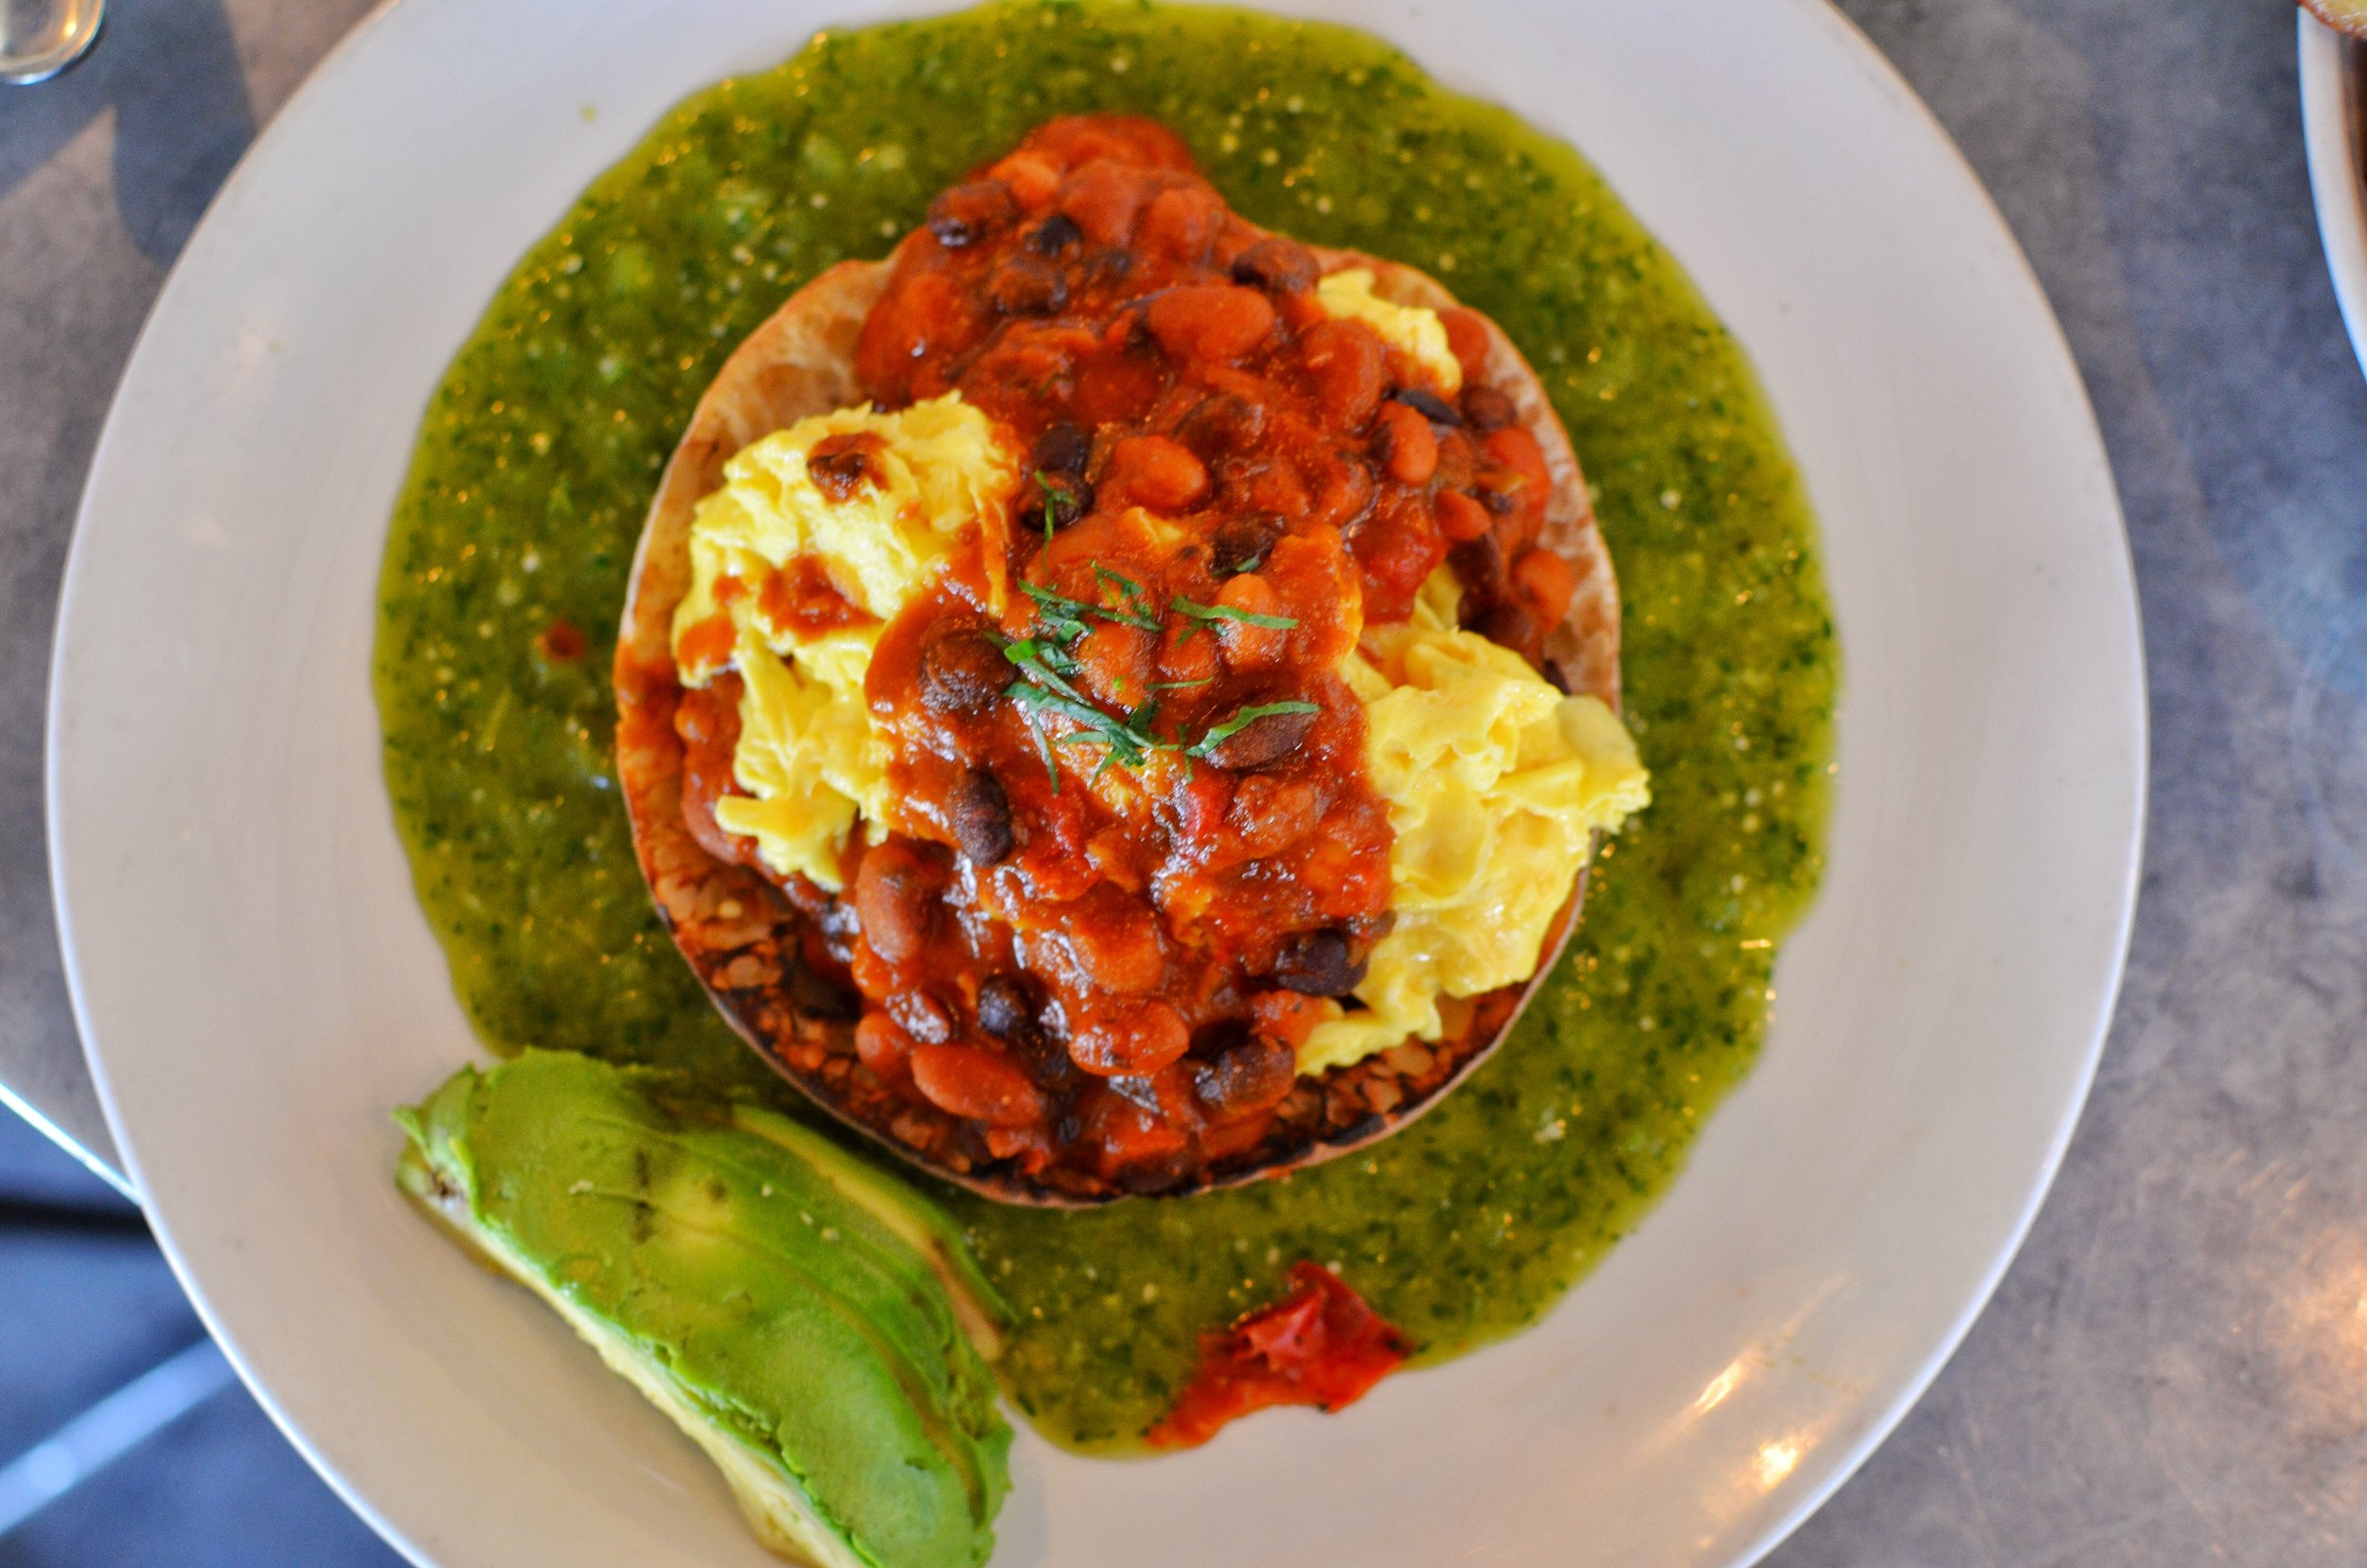 Virage Rancheros- 2 eggs, red & black beans, matbucha, salsa verde, pita